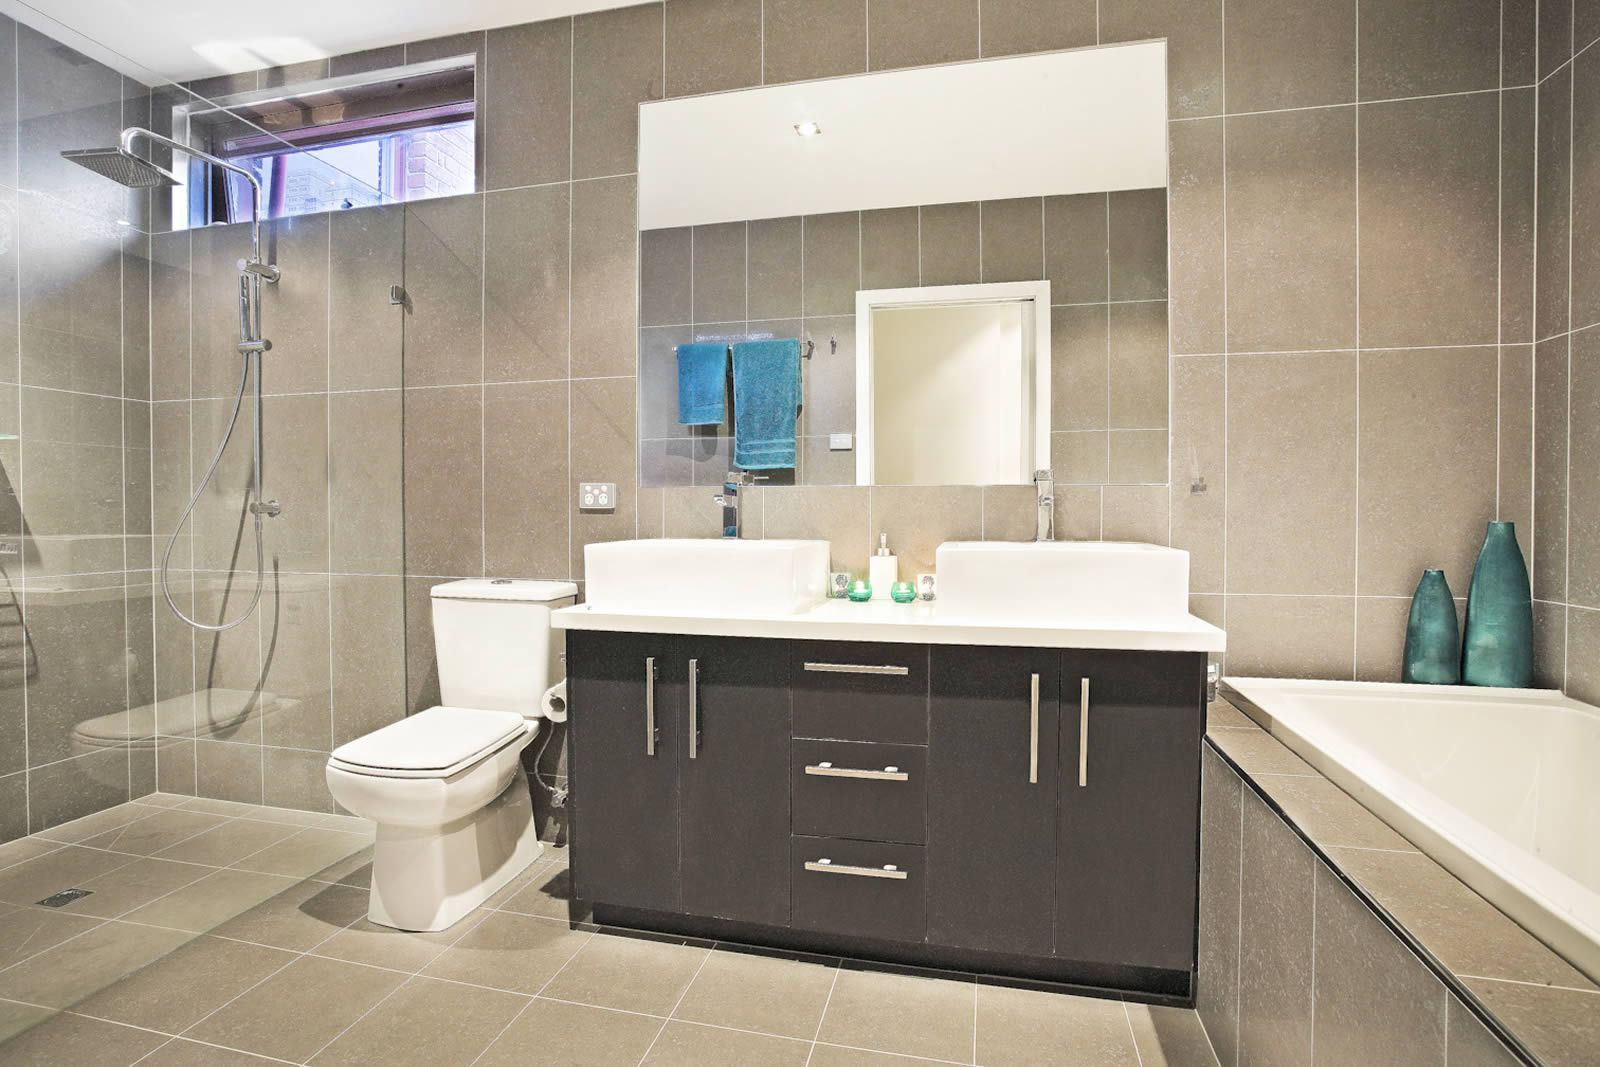 Interior Designer Bathrooms outstanding designer bathrooms creative ideas interior bathroom melbourne southnextus check more at http